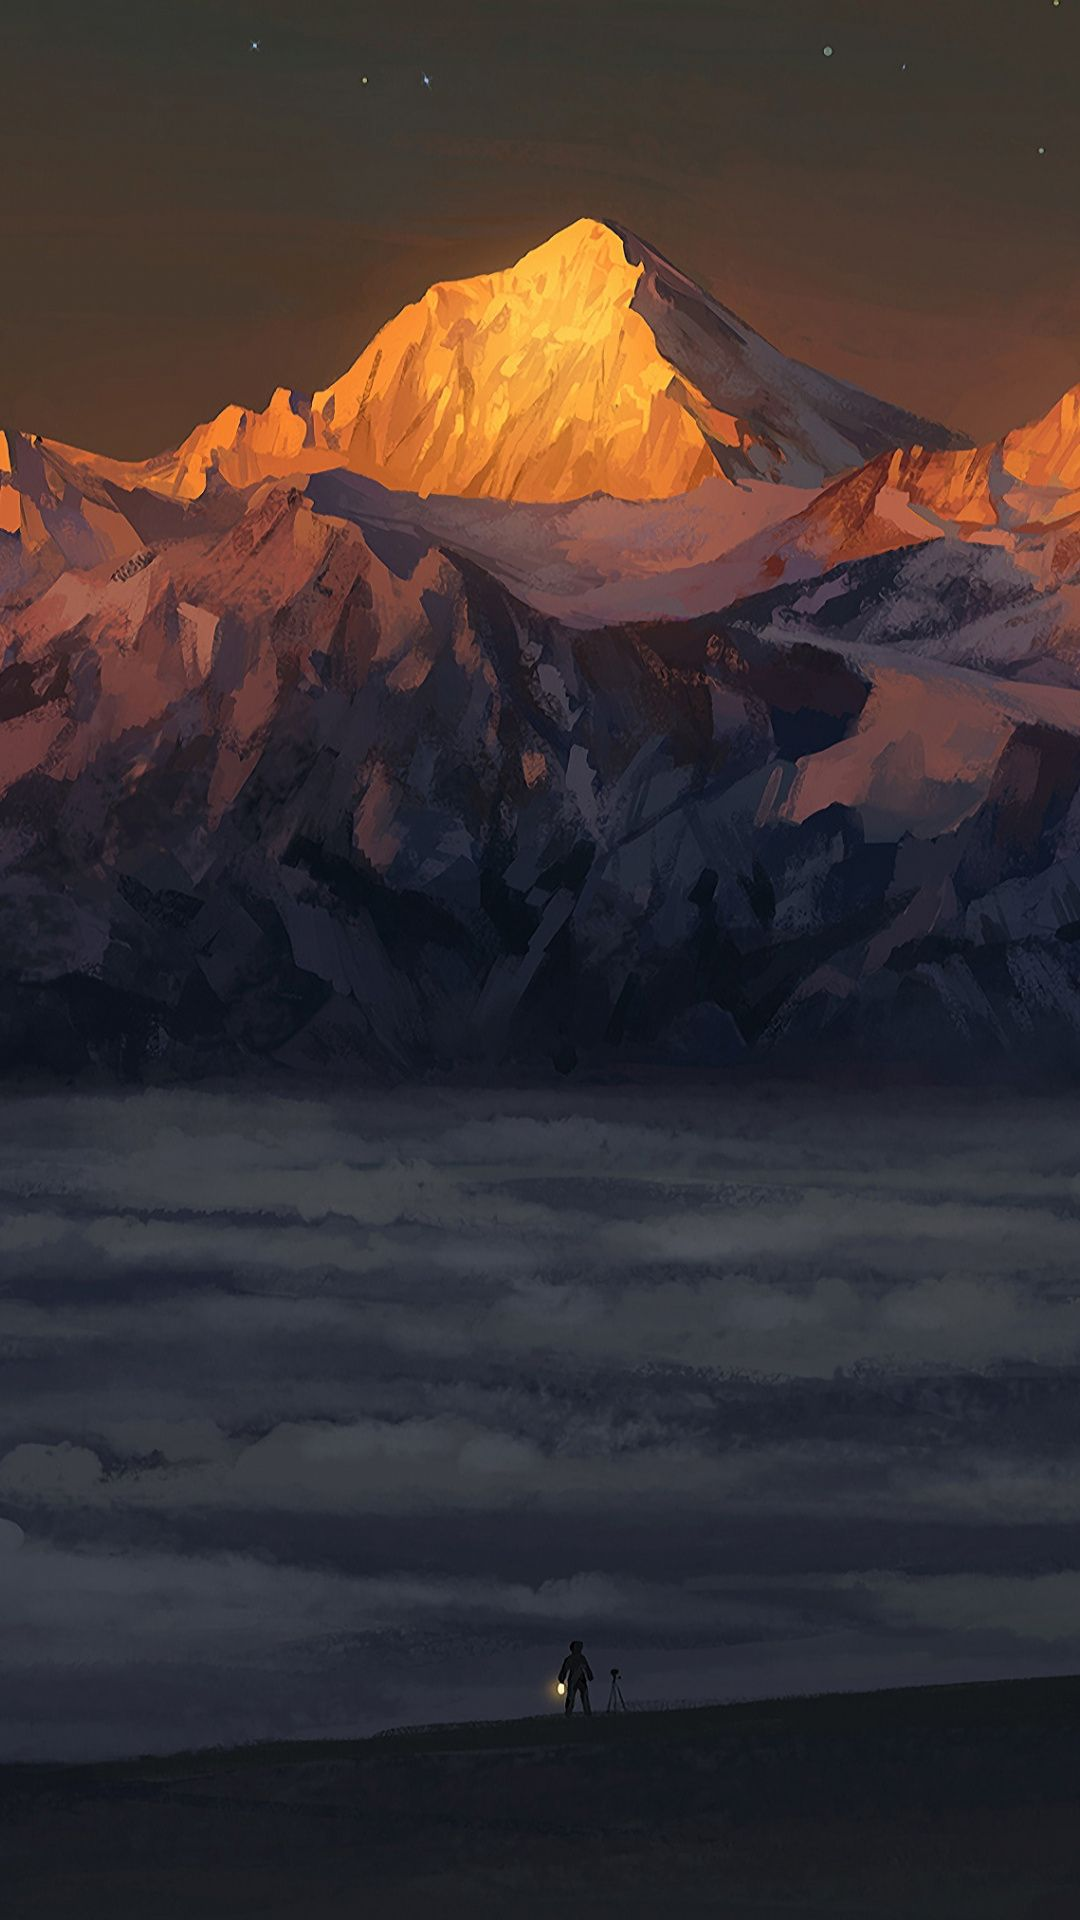 Fantasy Mountain Scenery Art